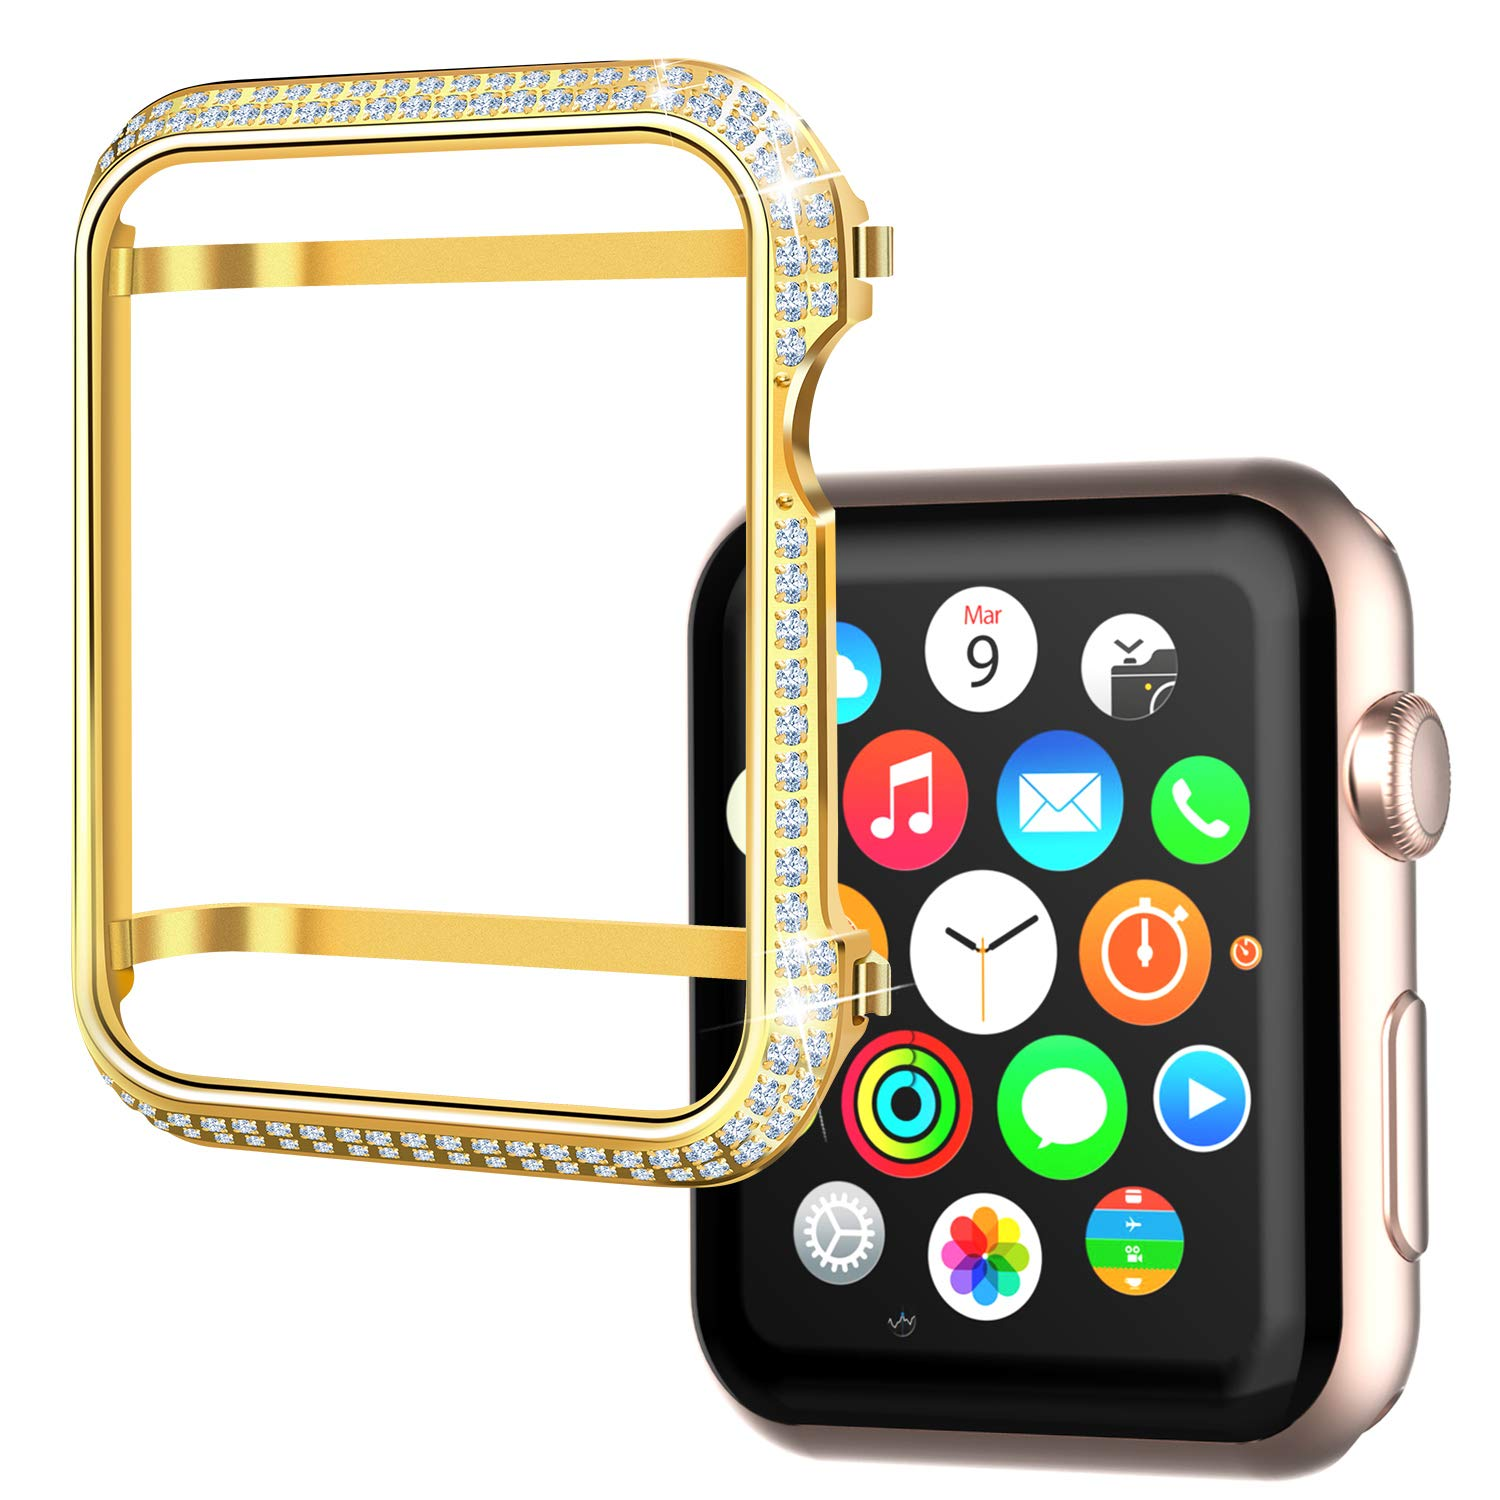 Srotek Diamond Watch Case Handcrafted Zircon Watch Bumper Gold-Plated 44mm Watch Bezel Cover Compatible with Apple Watch Series 4 for Men/Women (44mm,Gold)